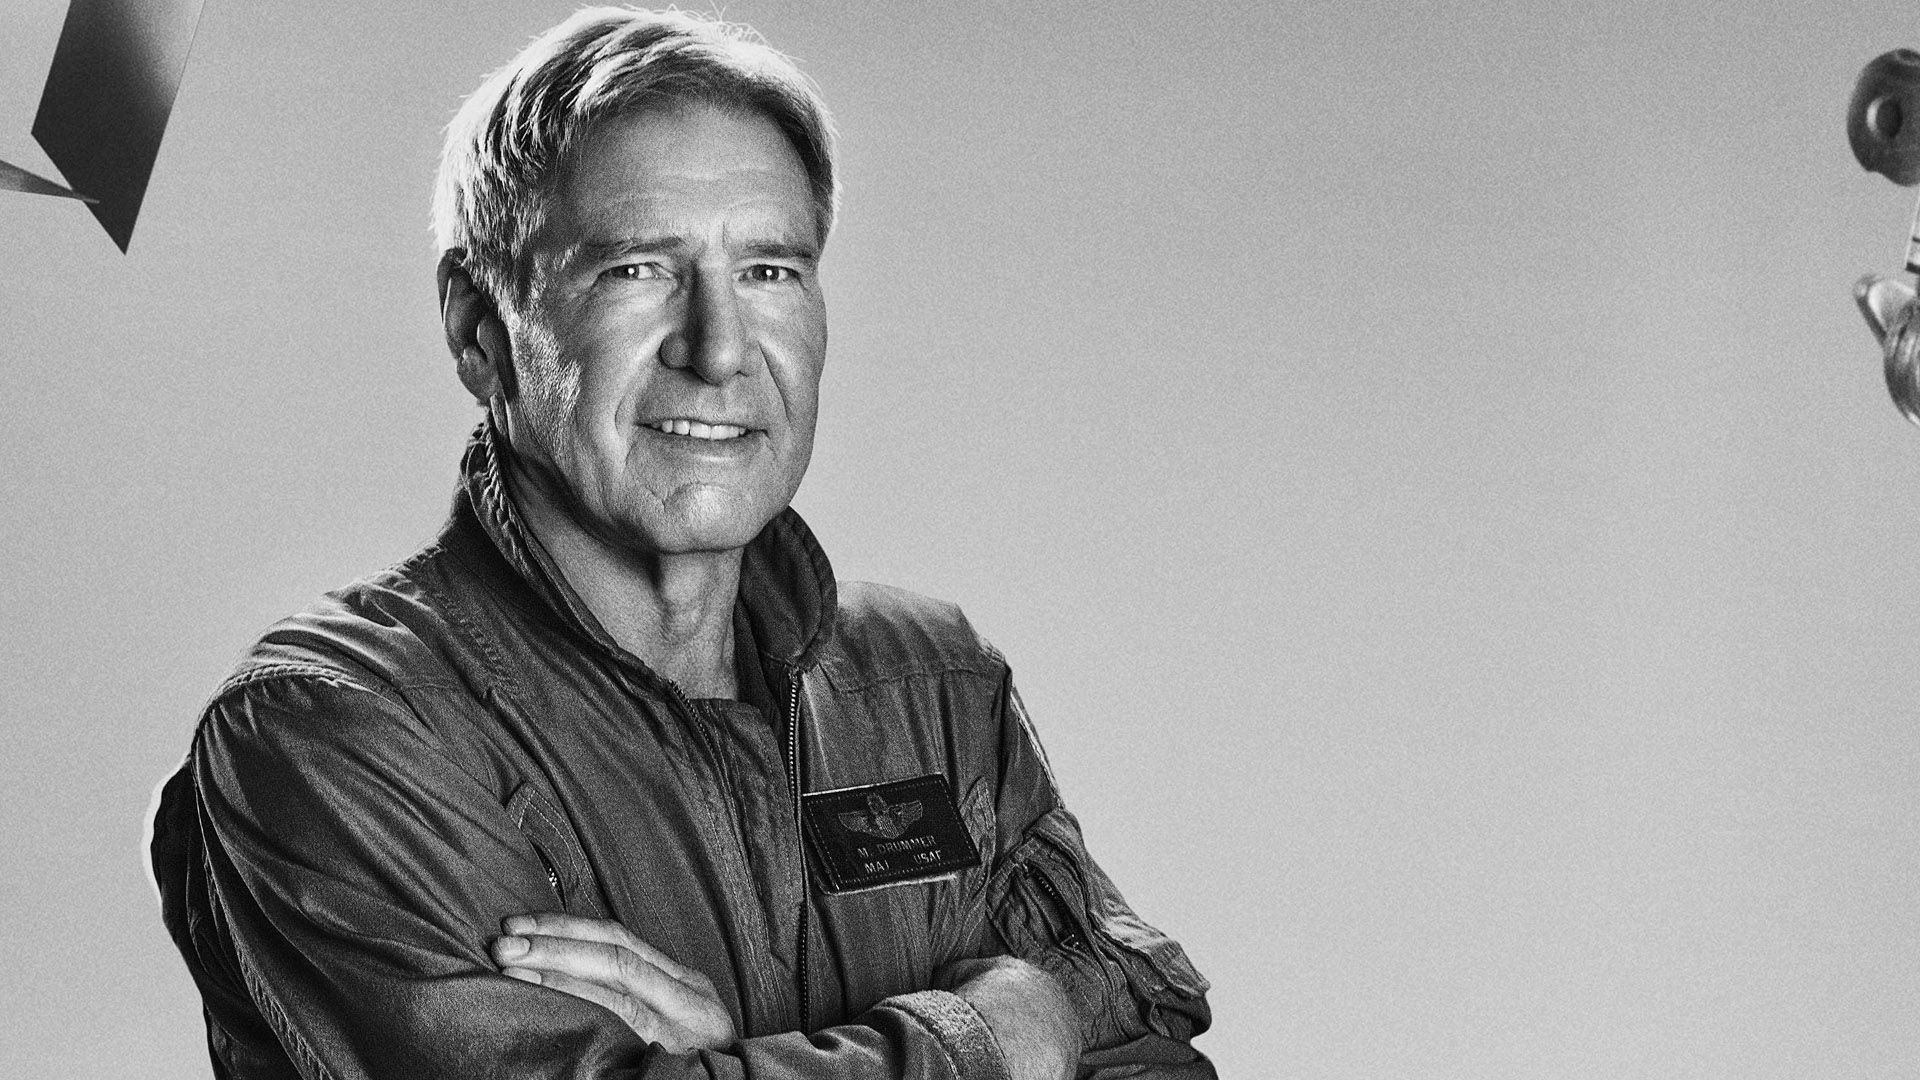 Harrison Ford Wallpapers - Top Free Harrison Ford Backgrounds -  WallpaperAccess